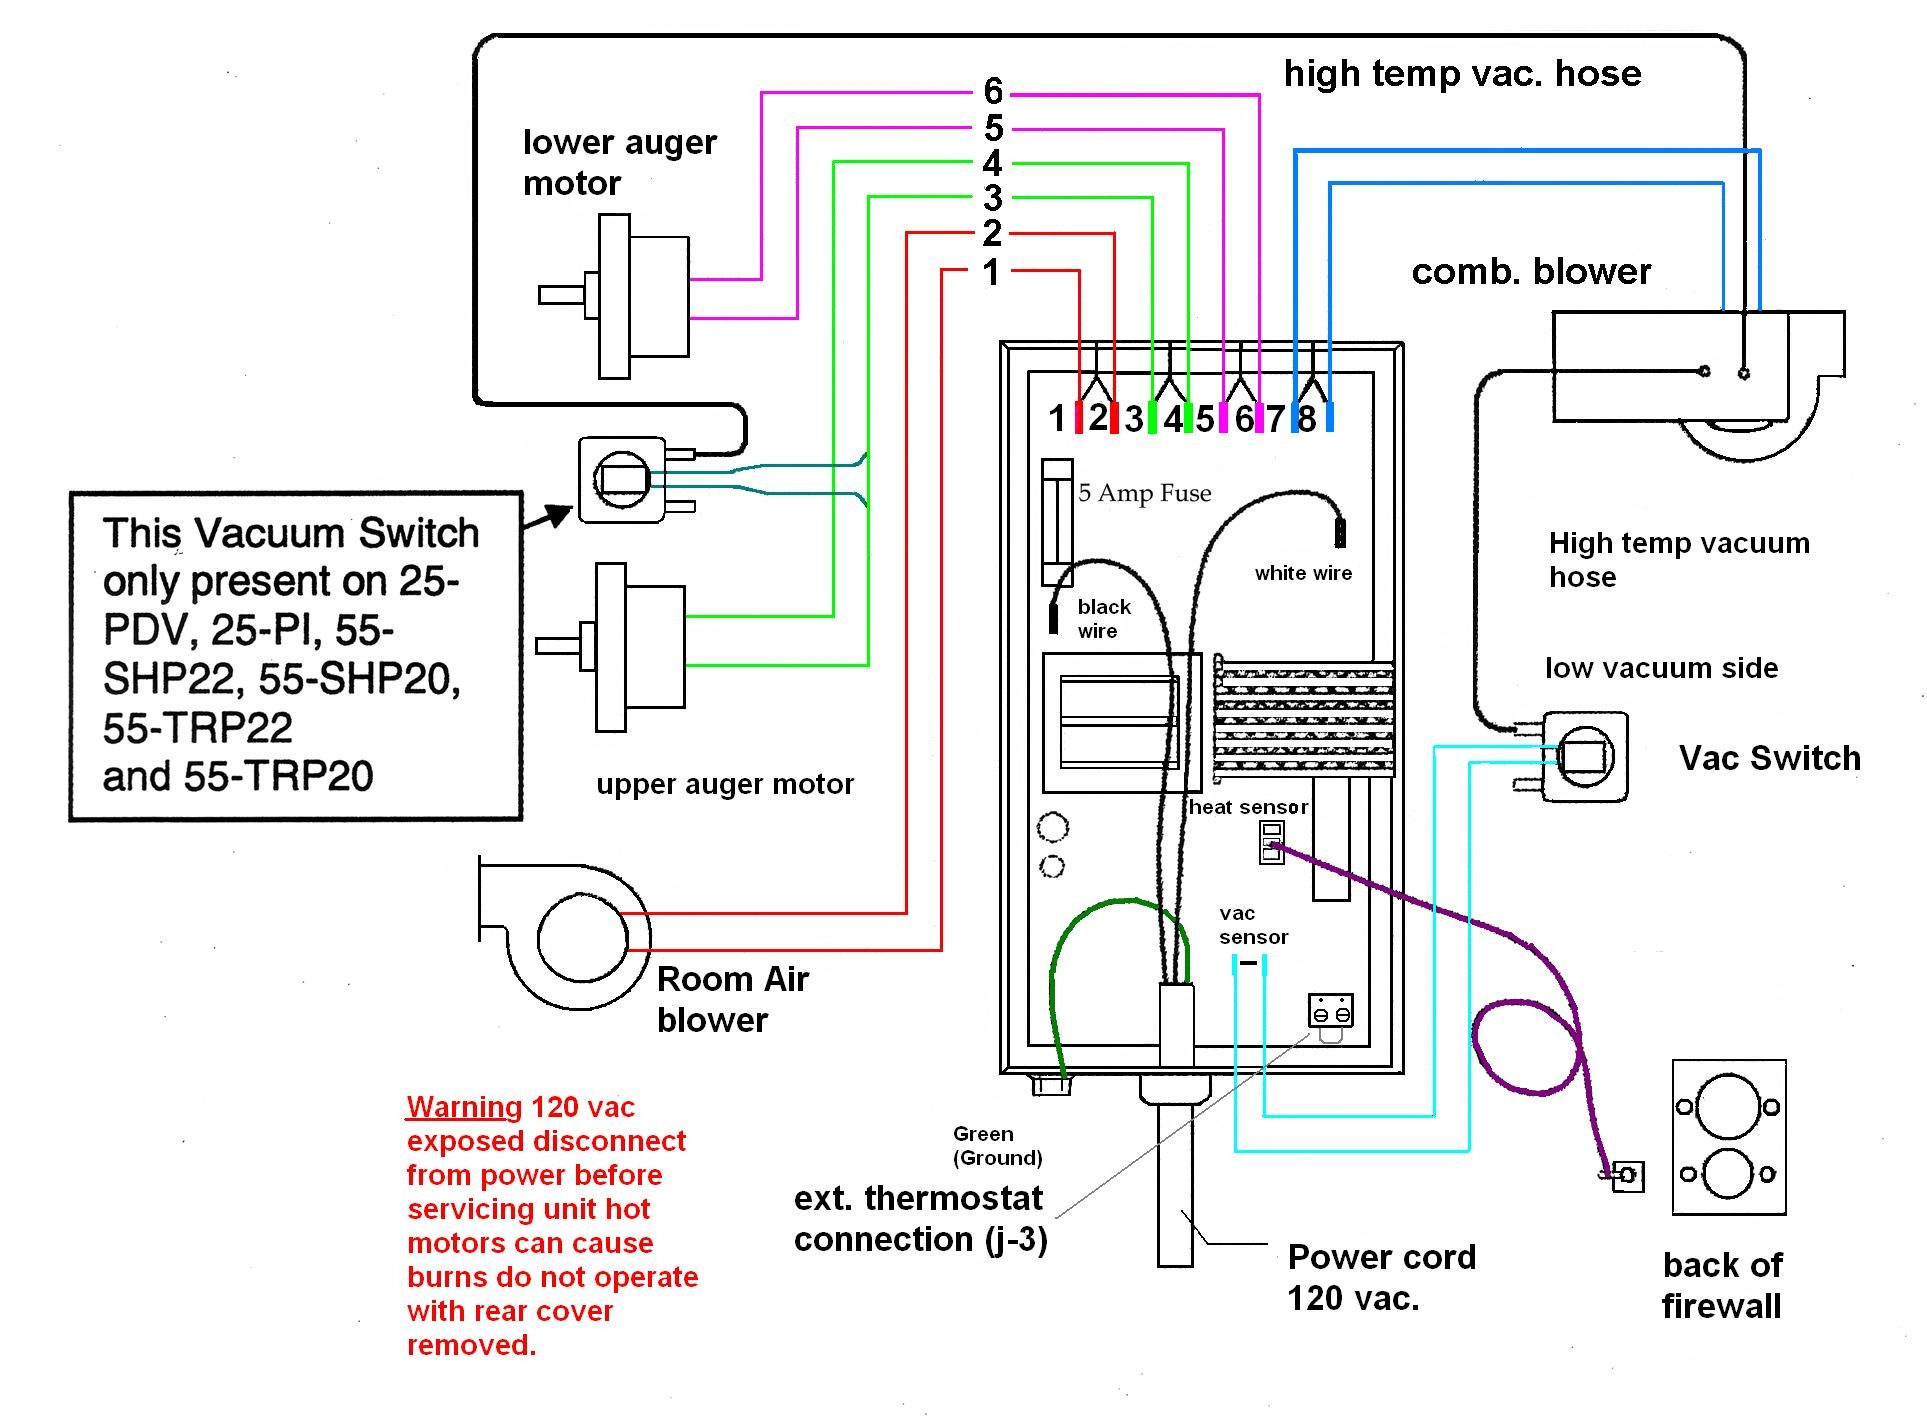 heat surge wiring diagram Download-heat surge wiring diagram auto electrical wiring diagram u2022 rh focusnews co Goodman Heat Pump Wiring 13-s